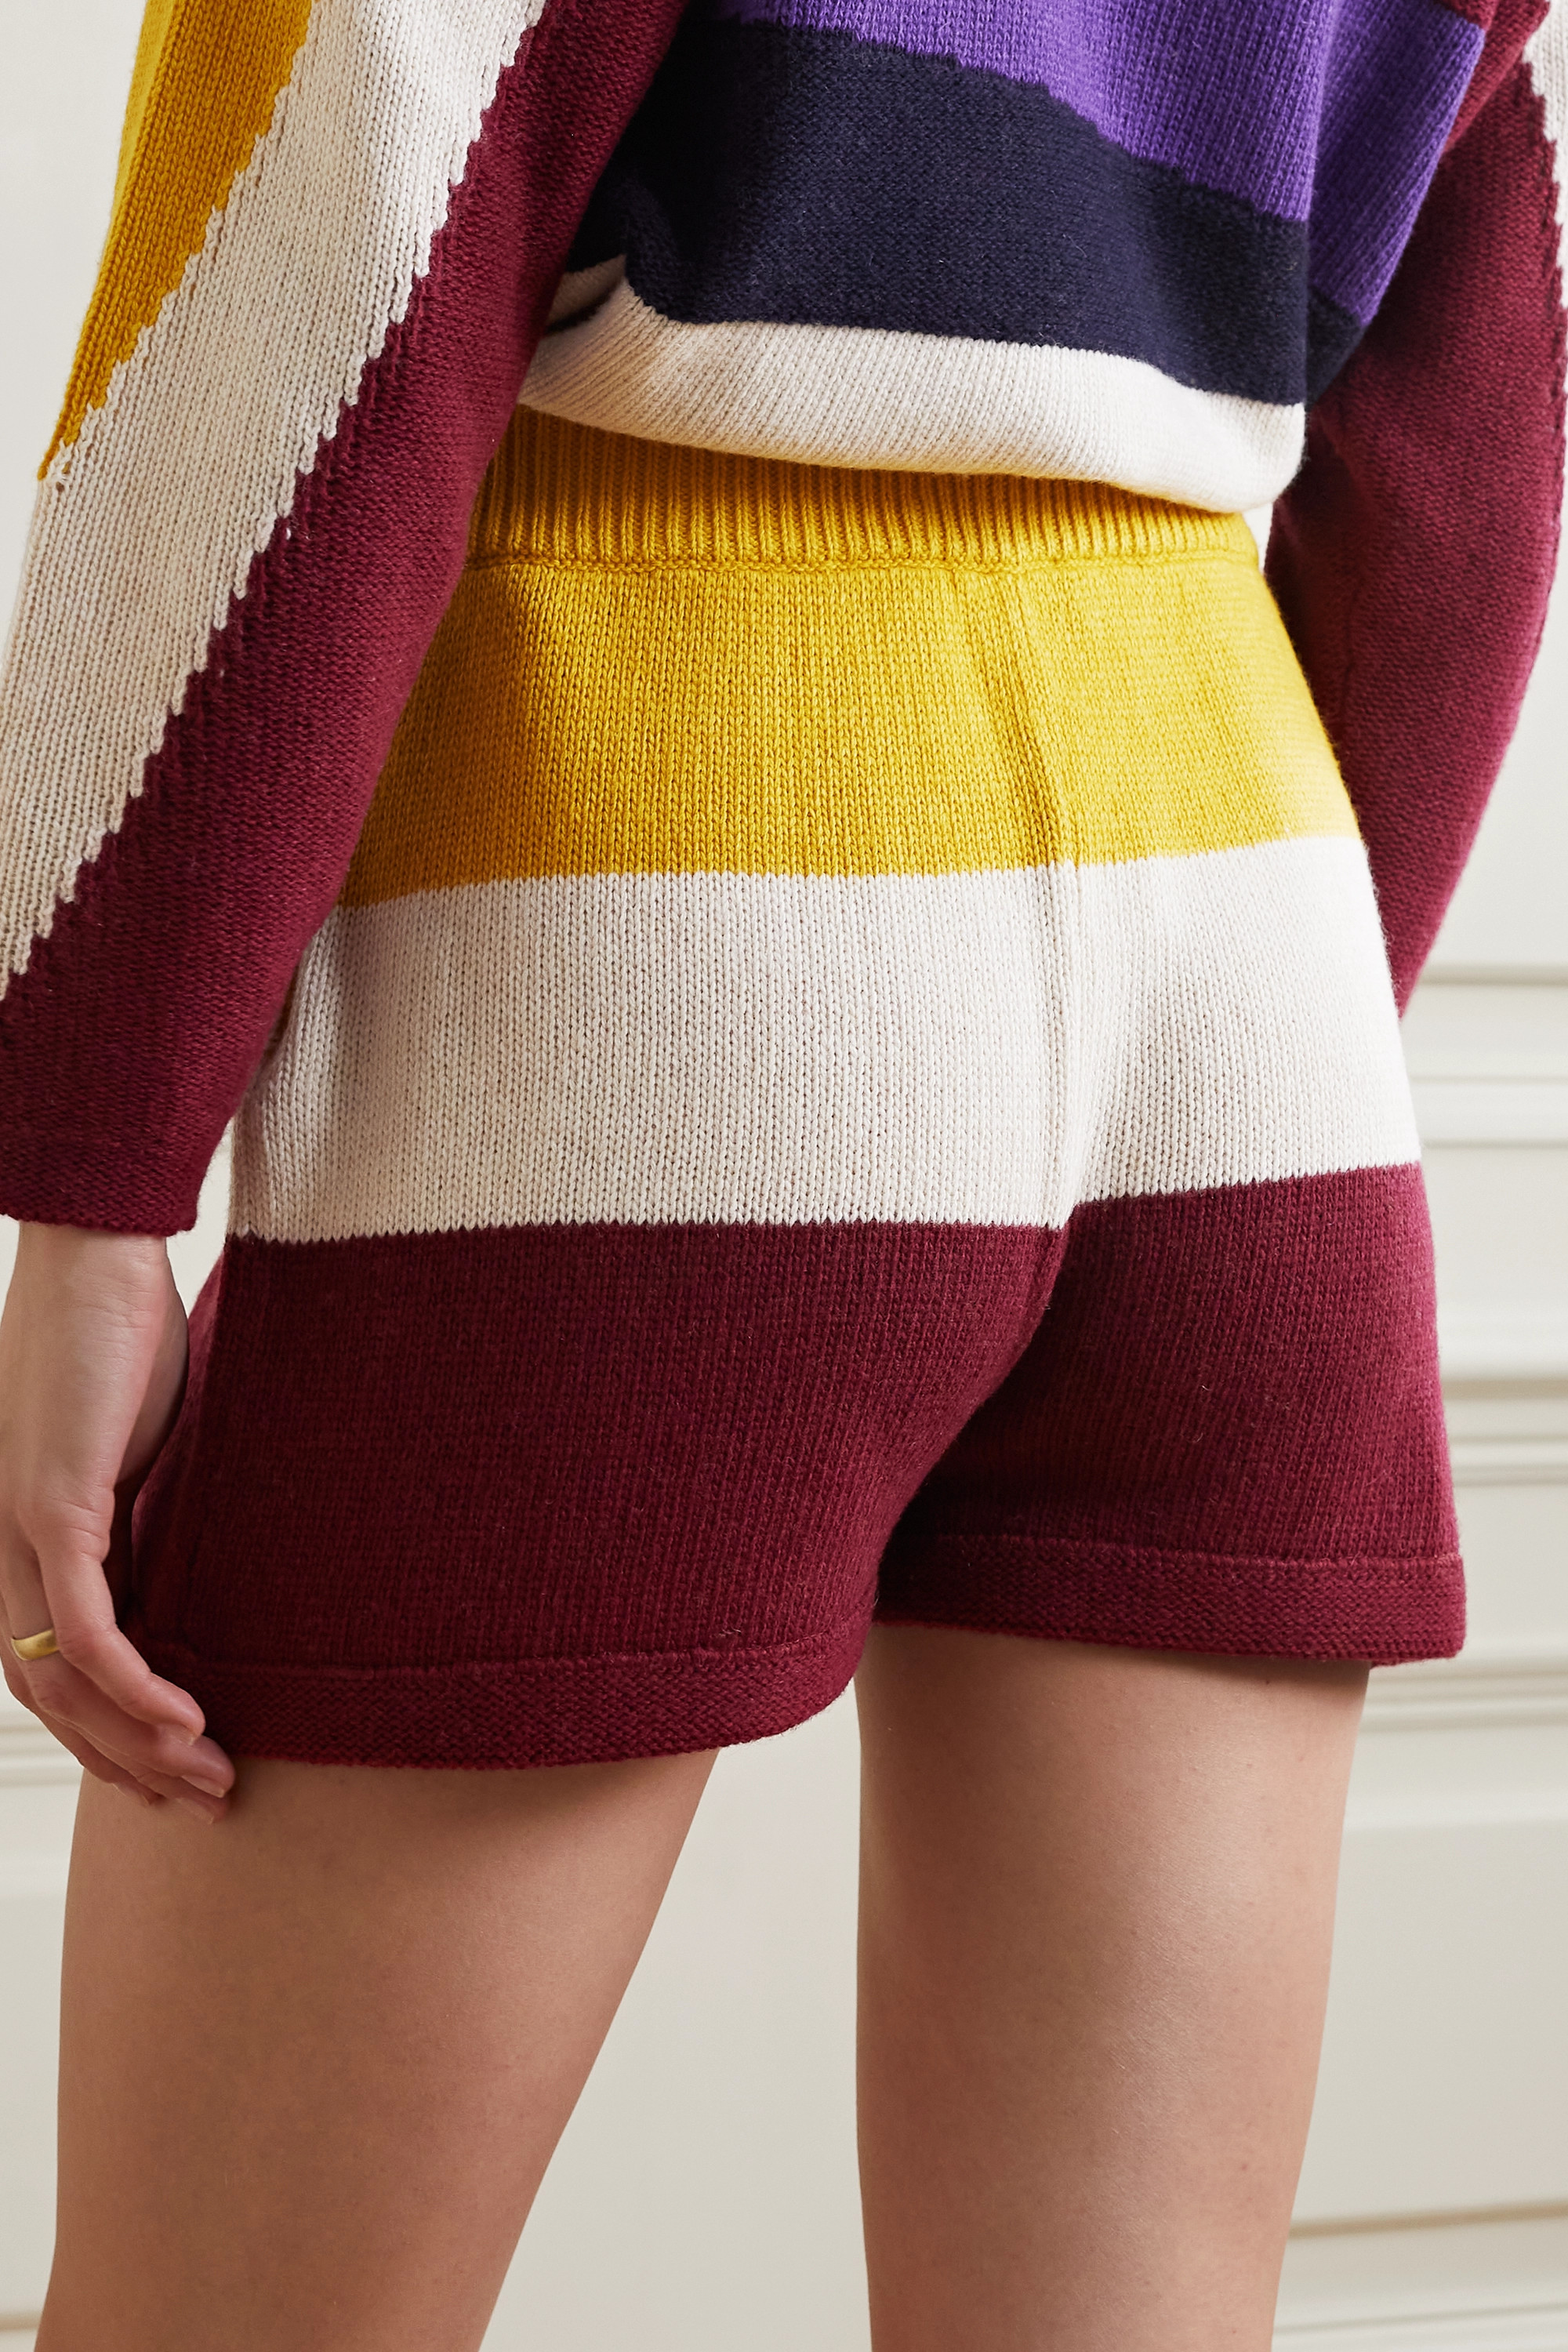 Paradis Perdus + NET SUSTAIN Jasper striped recycled knitted shorts